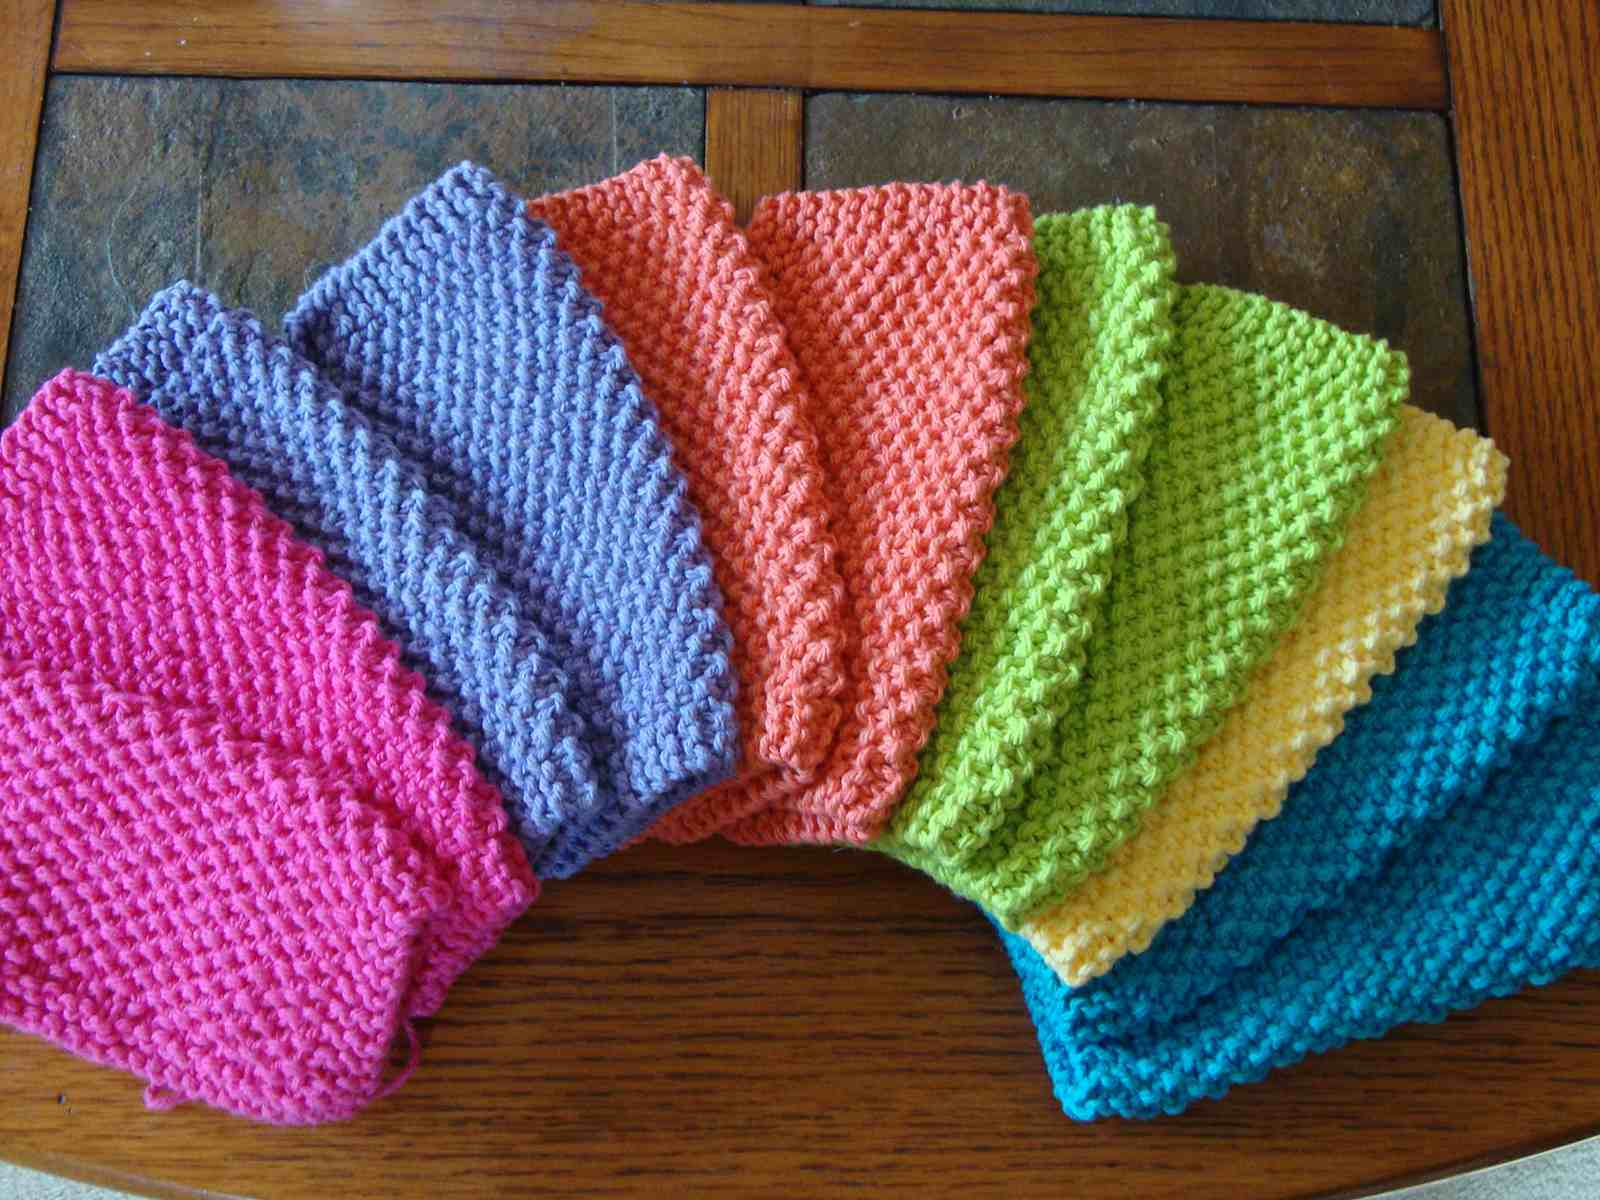 Knit Washcloth Patterns 10 Knit Dishcloth Patterns For Beginners